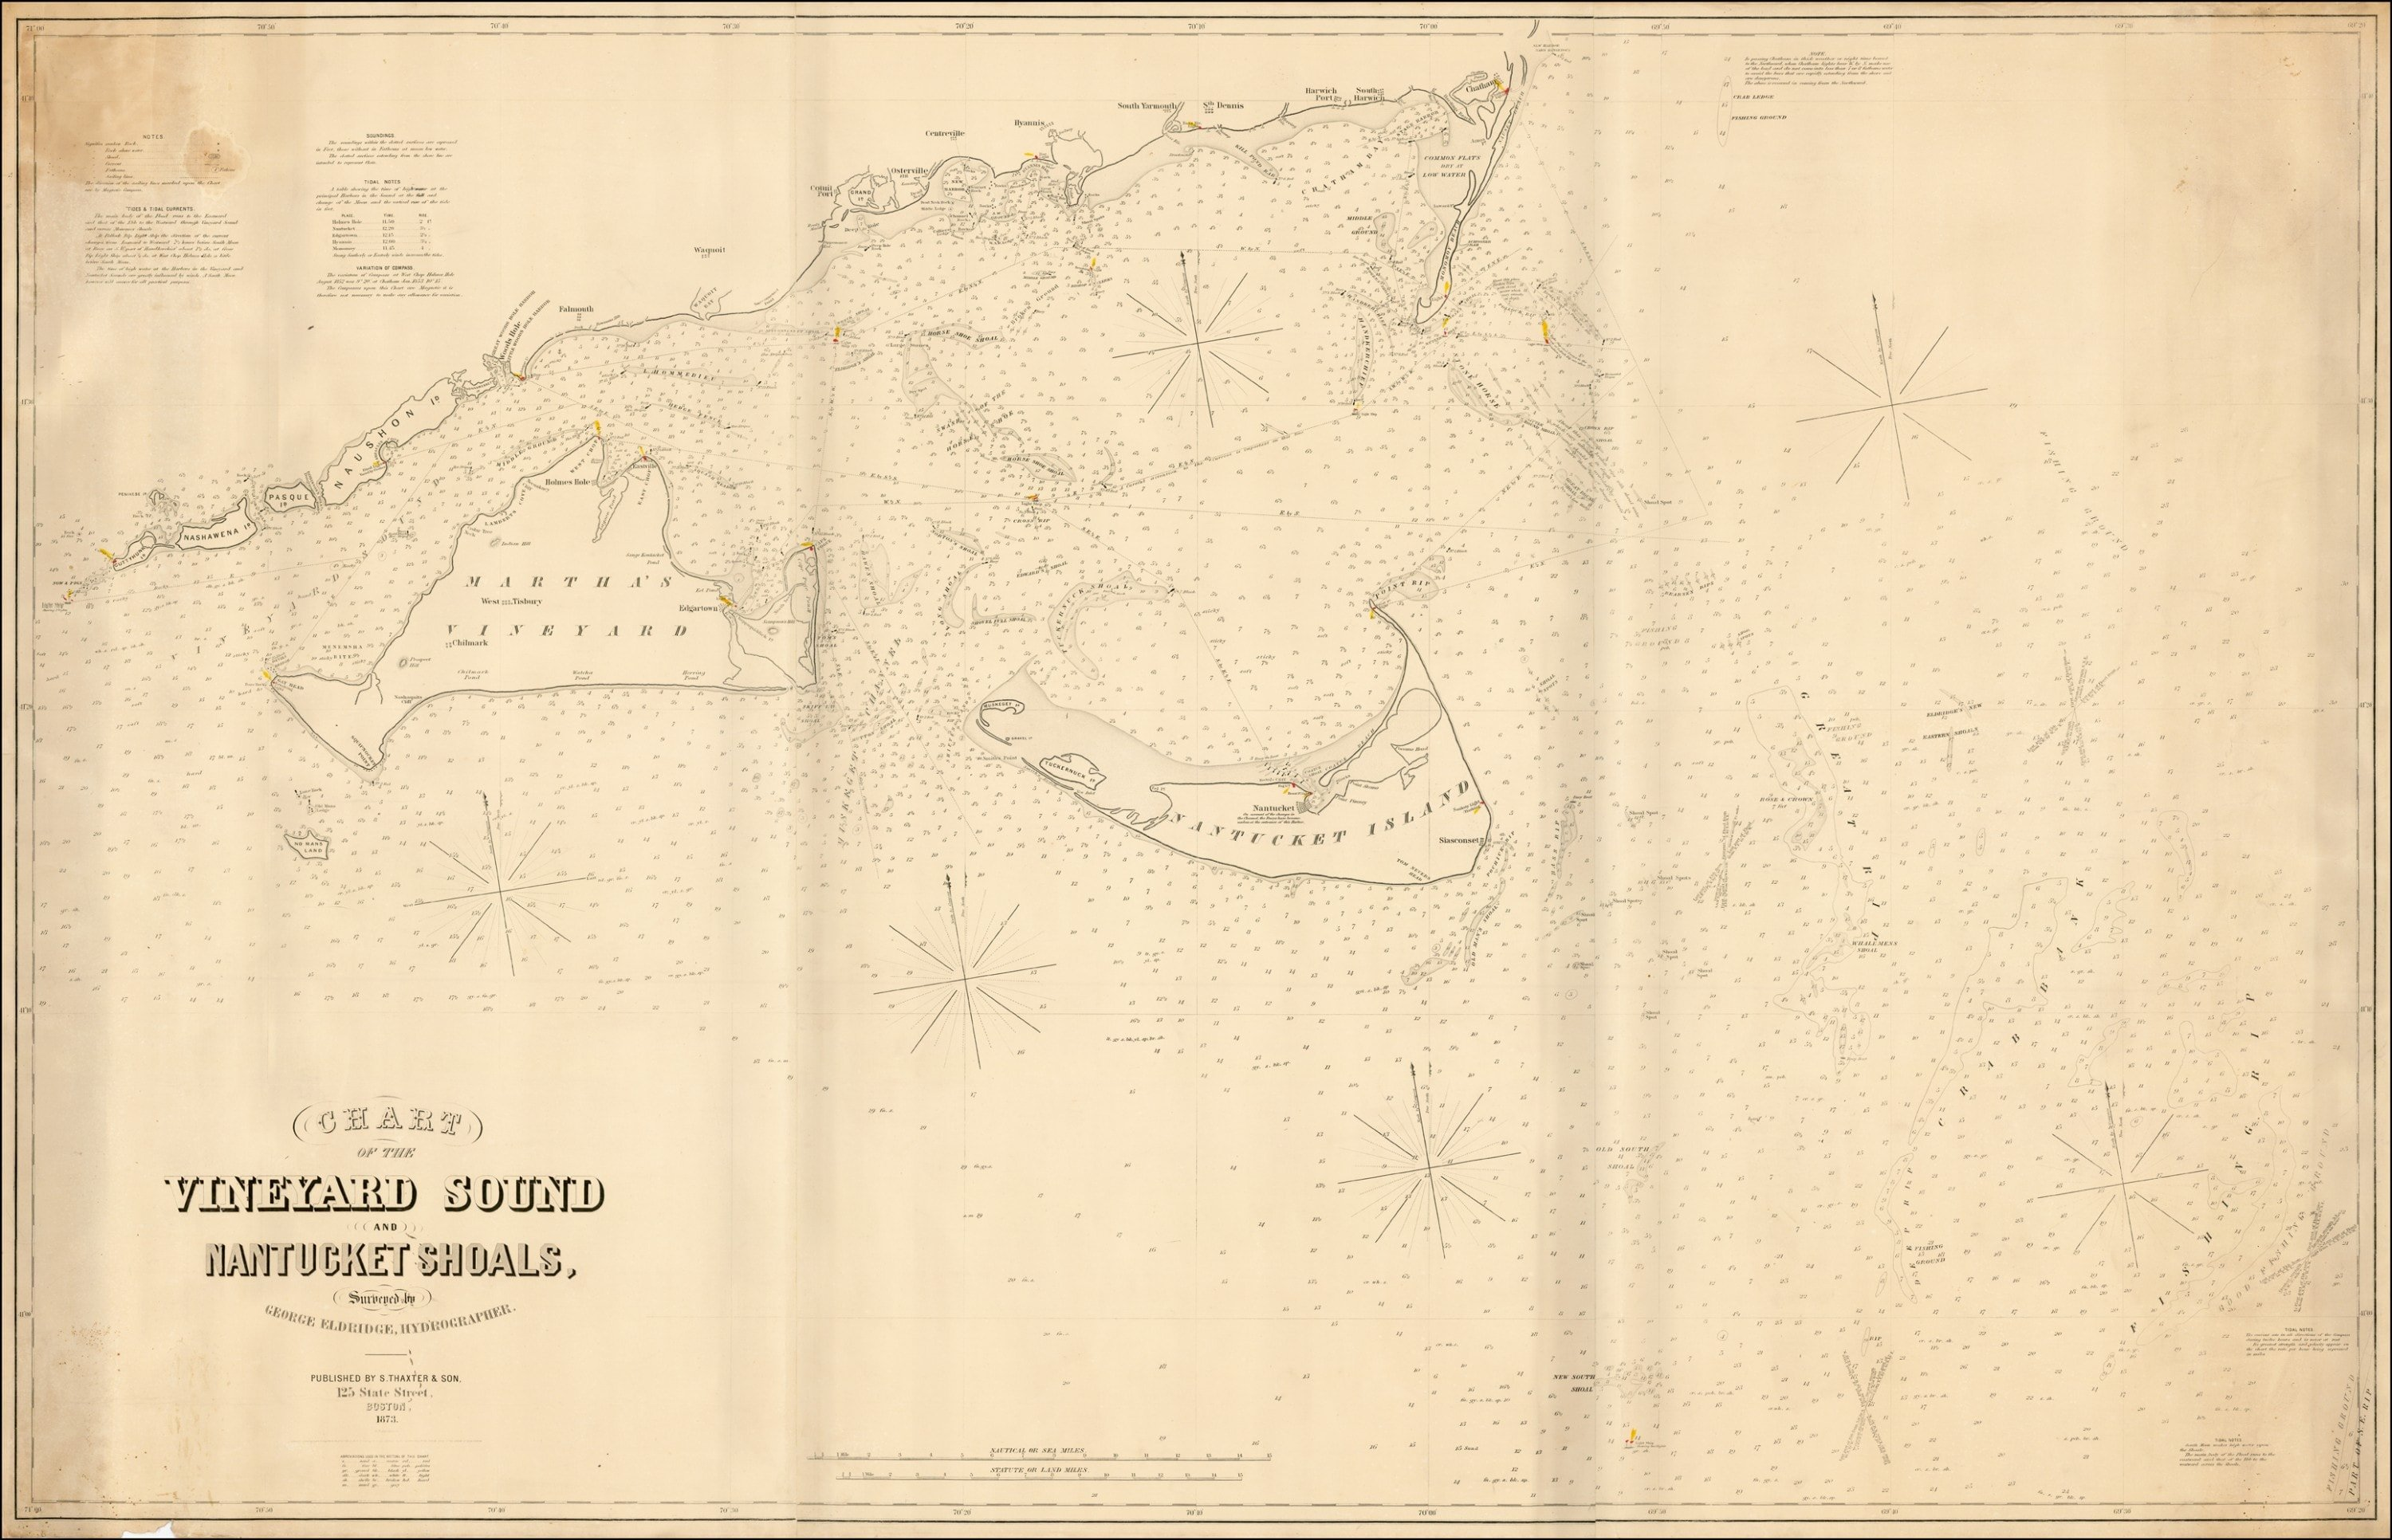 Classic chart of the waters off marthas vineyard and nantucket classic chart of the waters off marthas vineyard and nantucket nvjuhfo Image collections